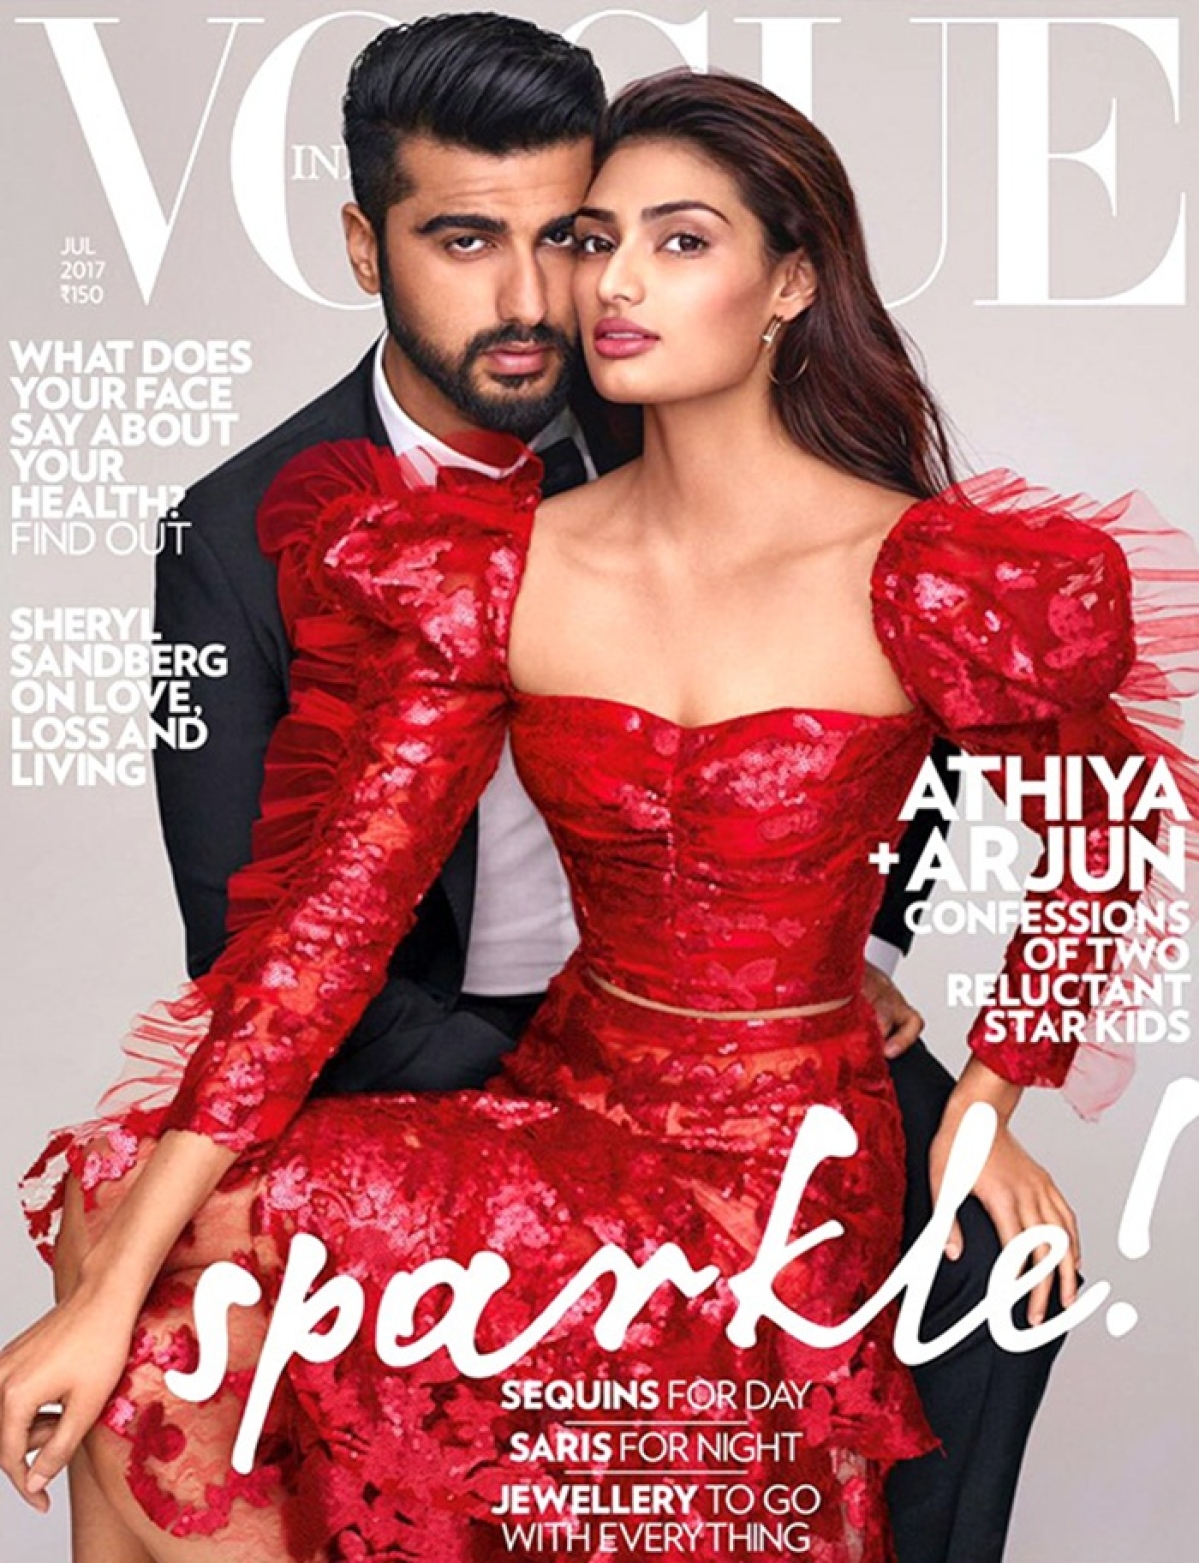 Check out: Arjun Kapoor and Athiya Shetty make a perfect pair on the cover of Vogue India